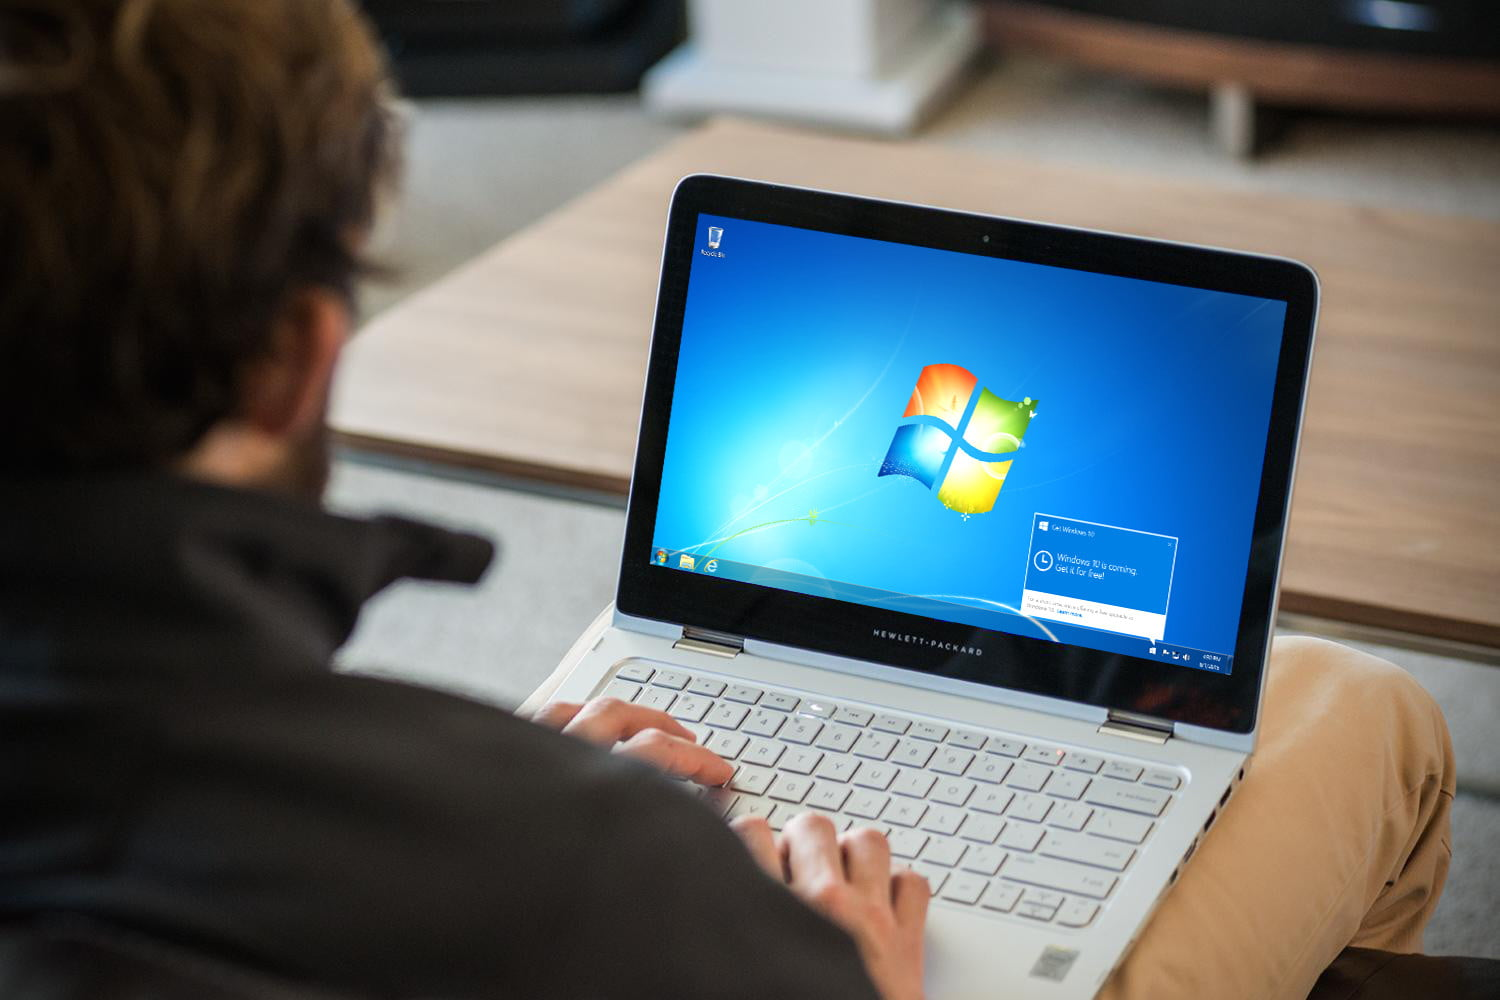 Windows 7 vs. Windows 10: Which is better?